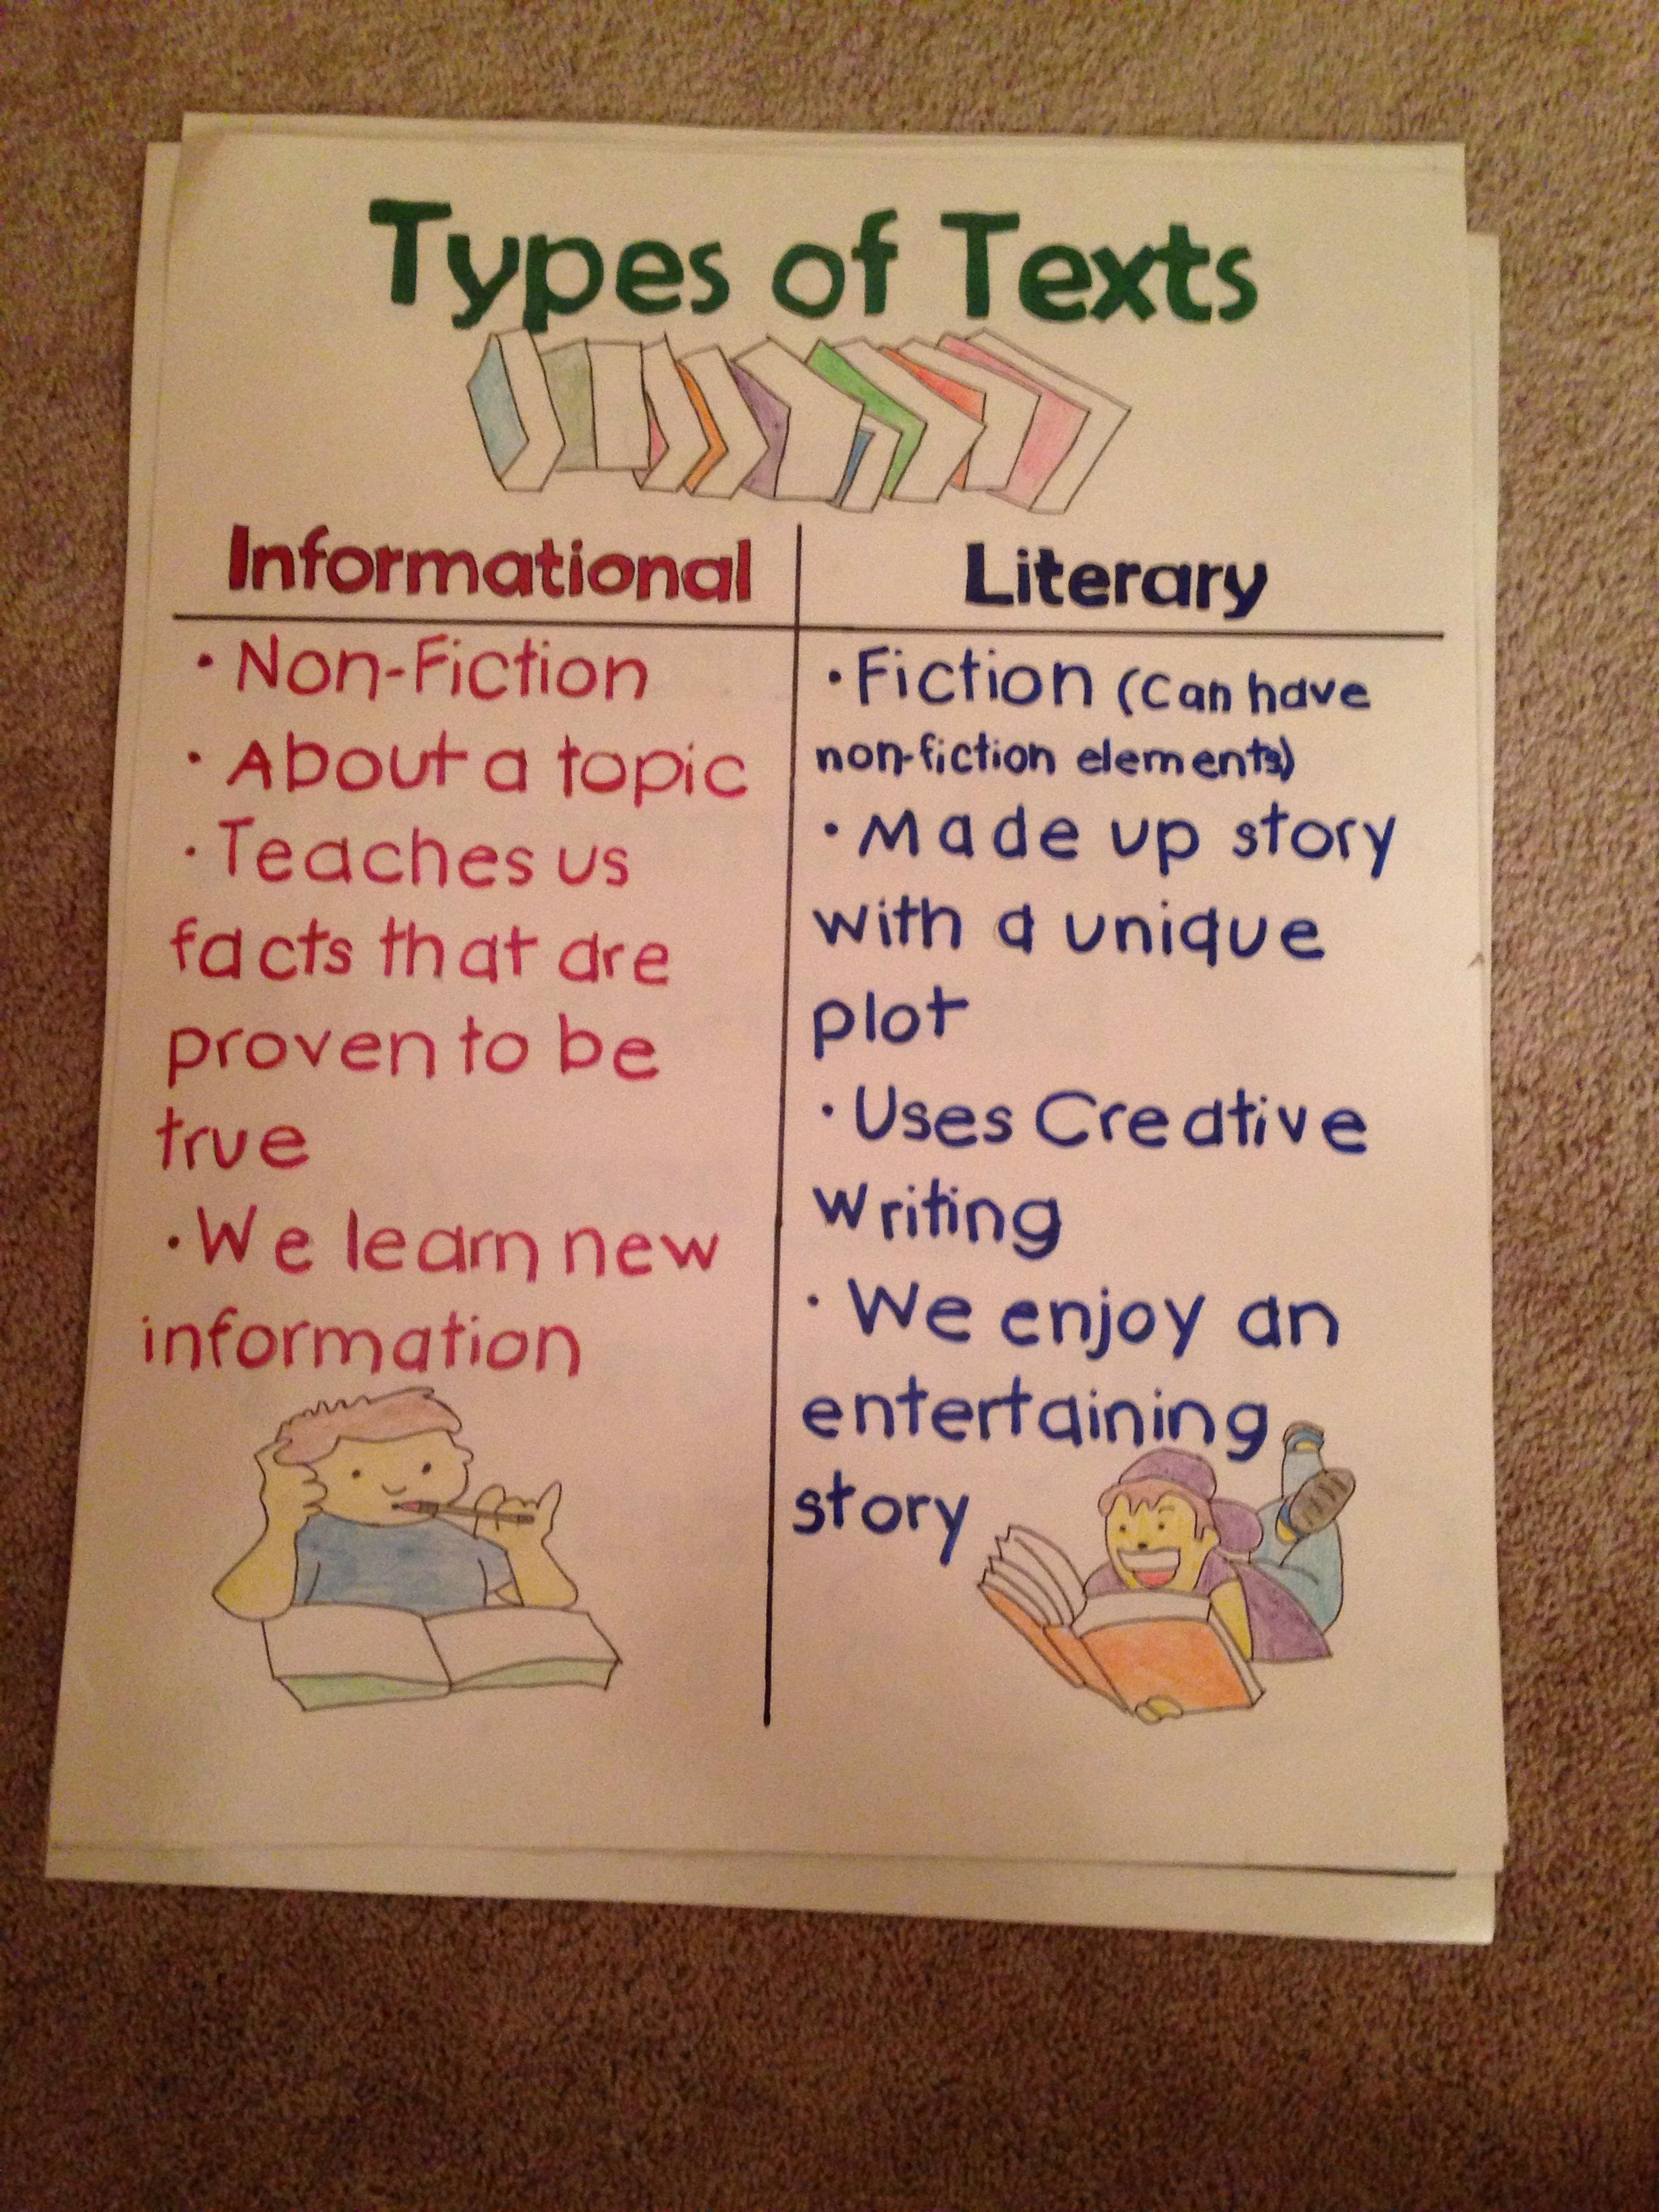 Types Of Text Poster Featuring Informational And Literary